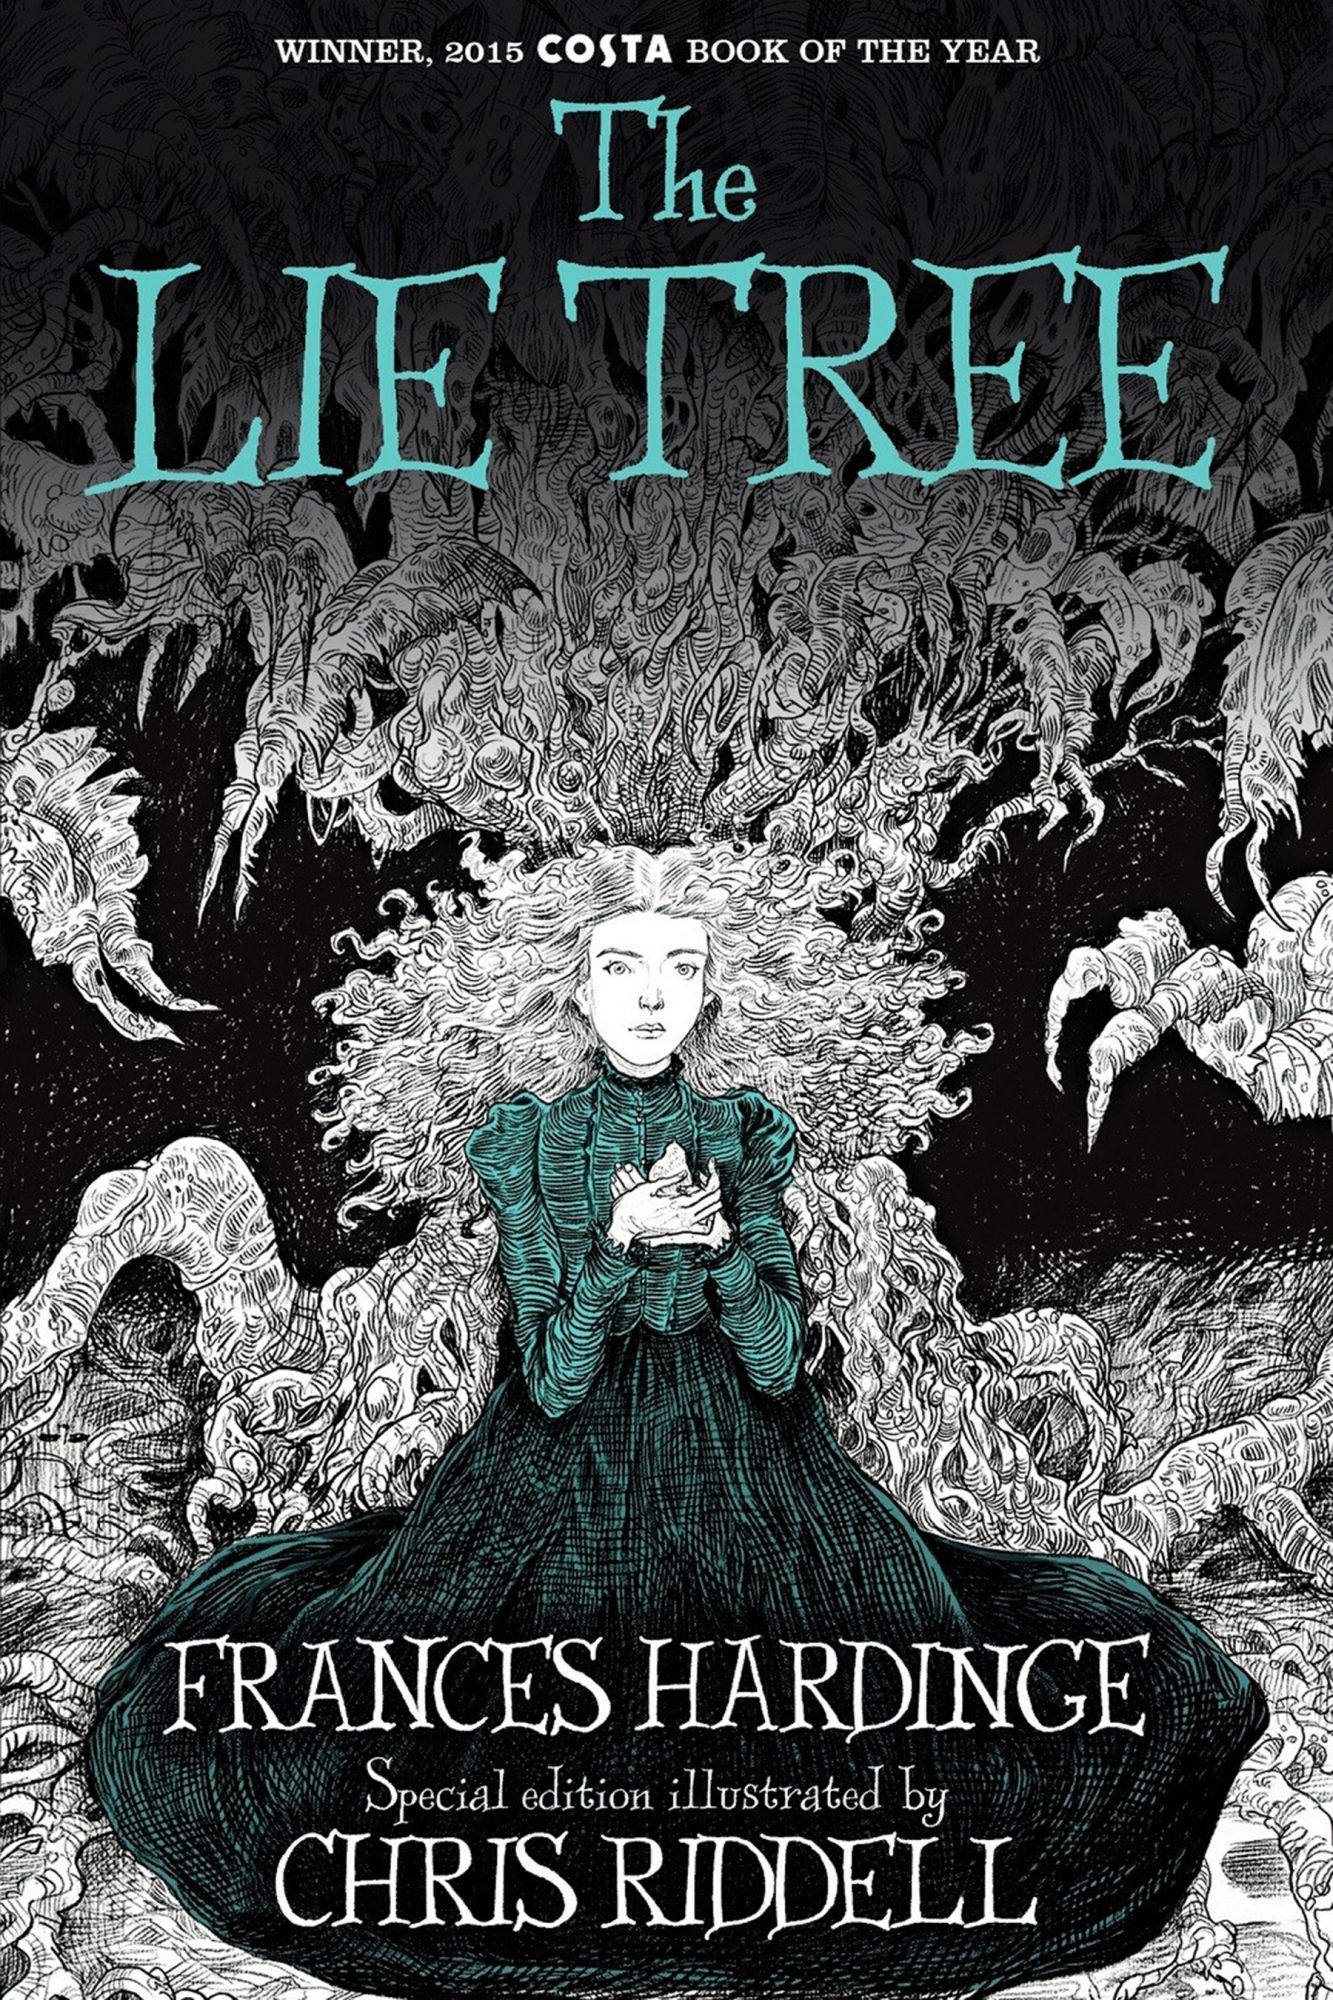 the_lie_tree_front_cover_1_1